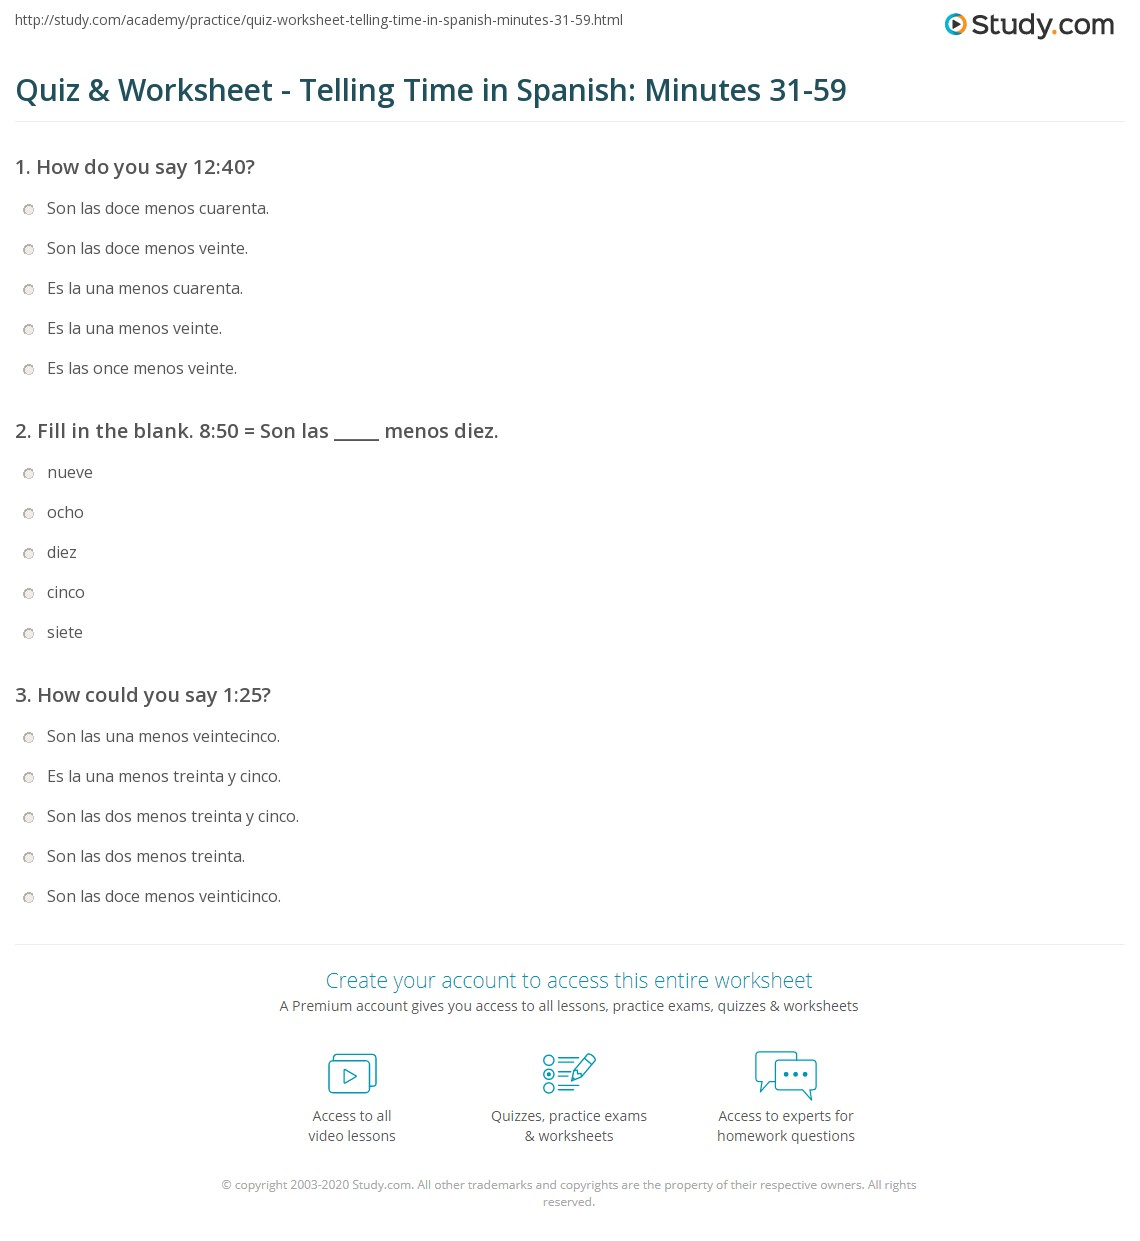 Worksheets Telling Time In Spanish Worksheets With Answers quiz worksheet telling time in spanish minutes 31 59 study com print the worksheet